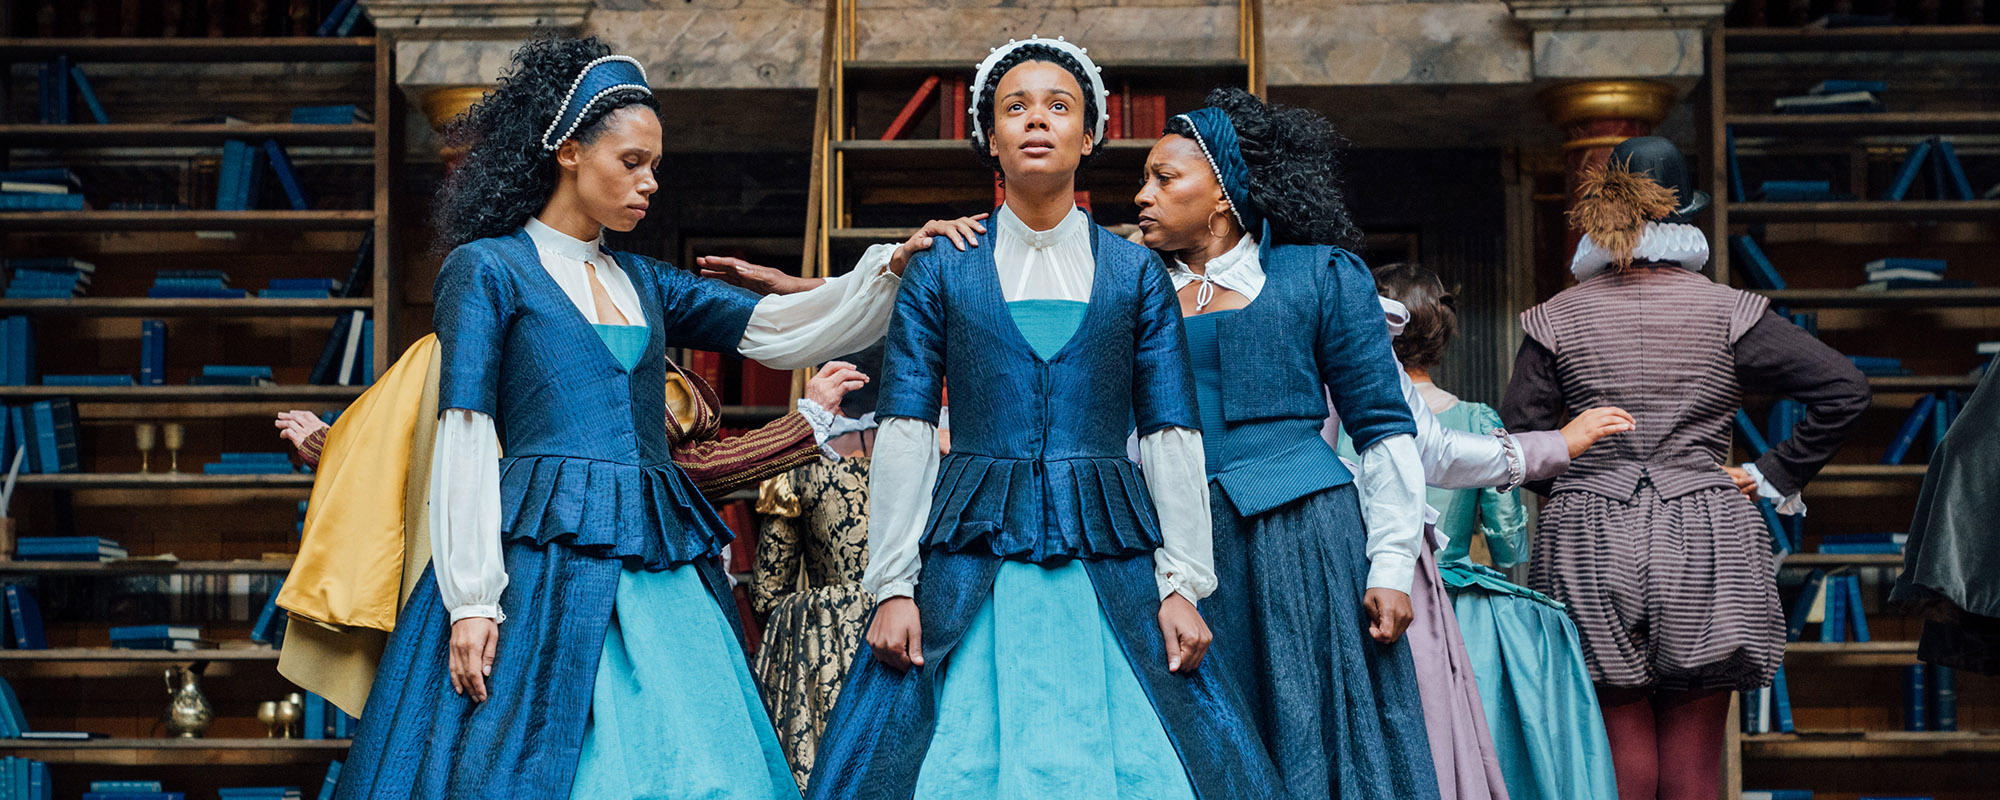 Three women, wearing similar blue Elizabethan dresses, stand together, each resting a hand on the other, supportive.